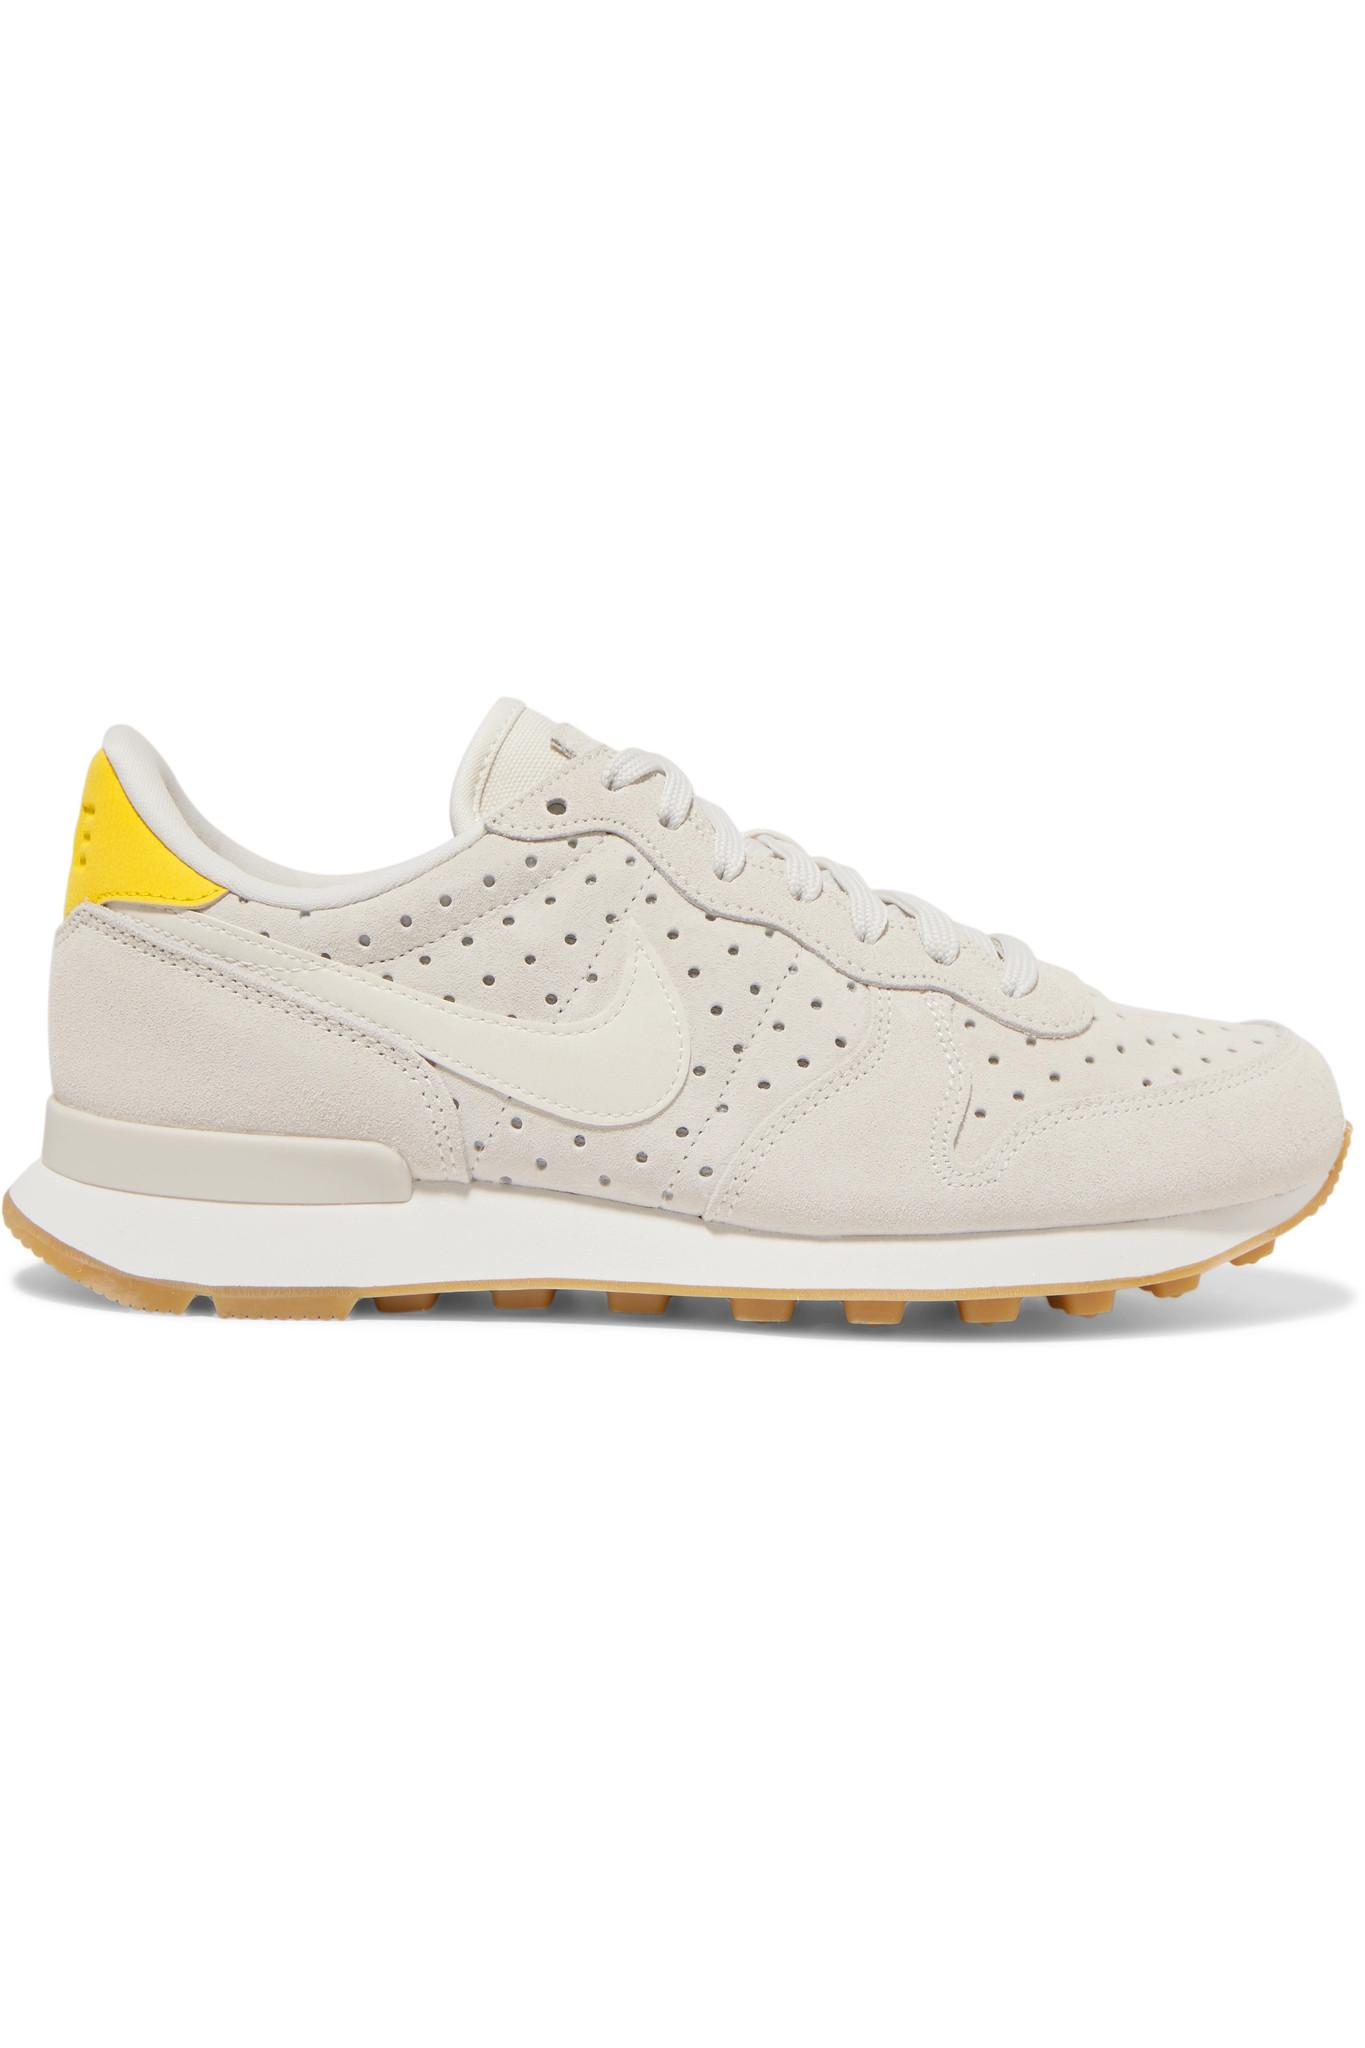 463891f0f31e Nike Internationalist Perforated Leather And Suede Sneakers in White ...